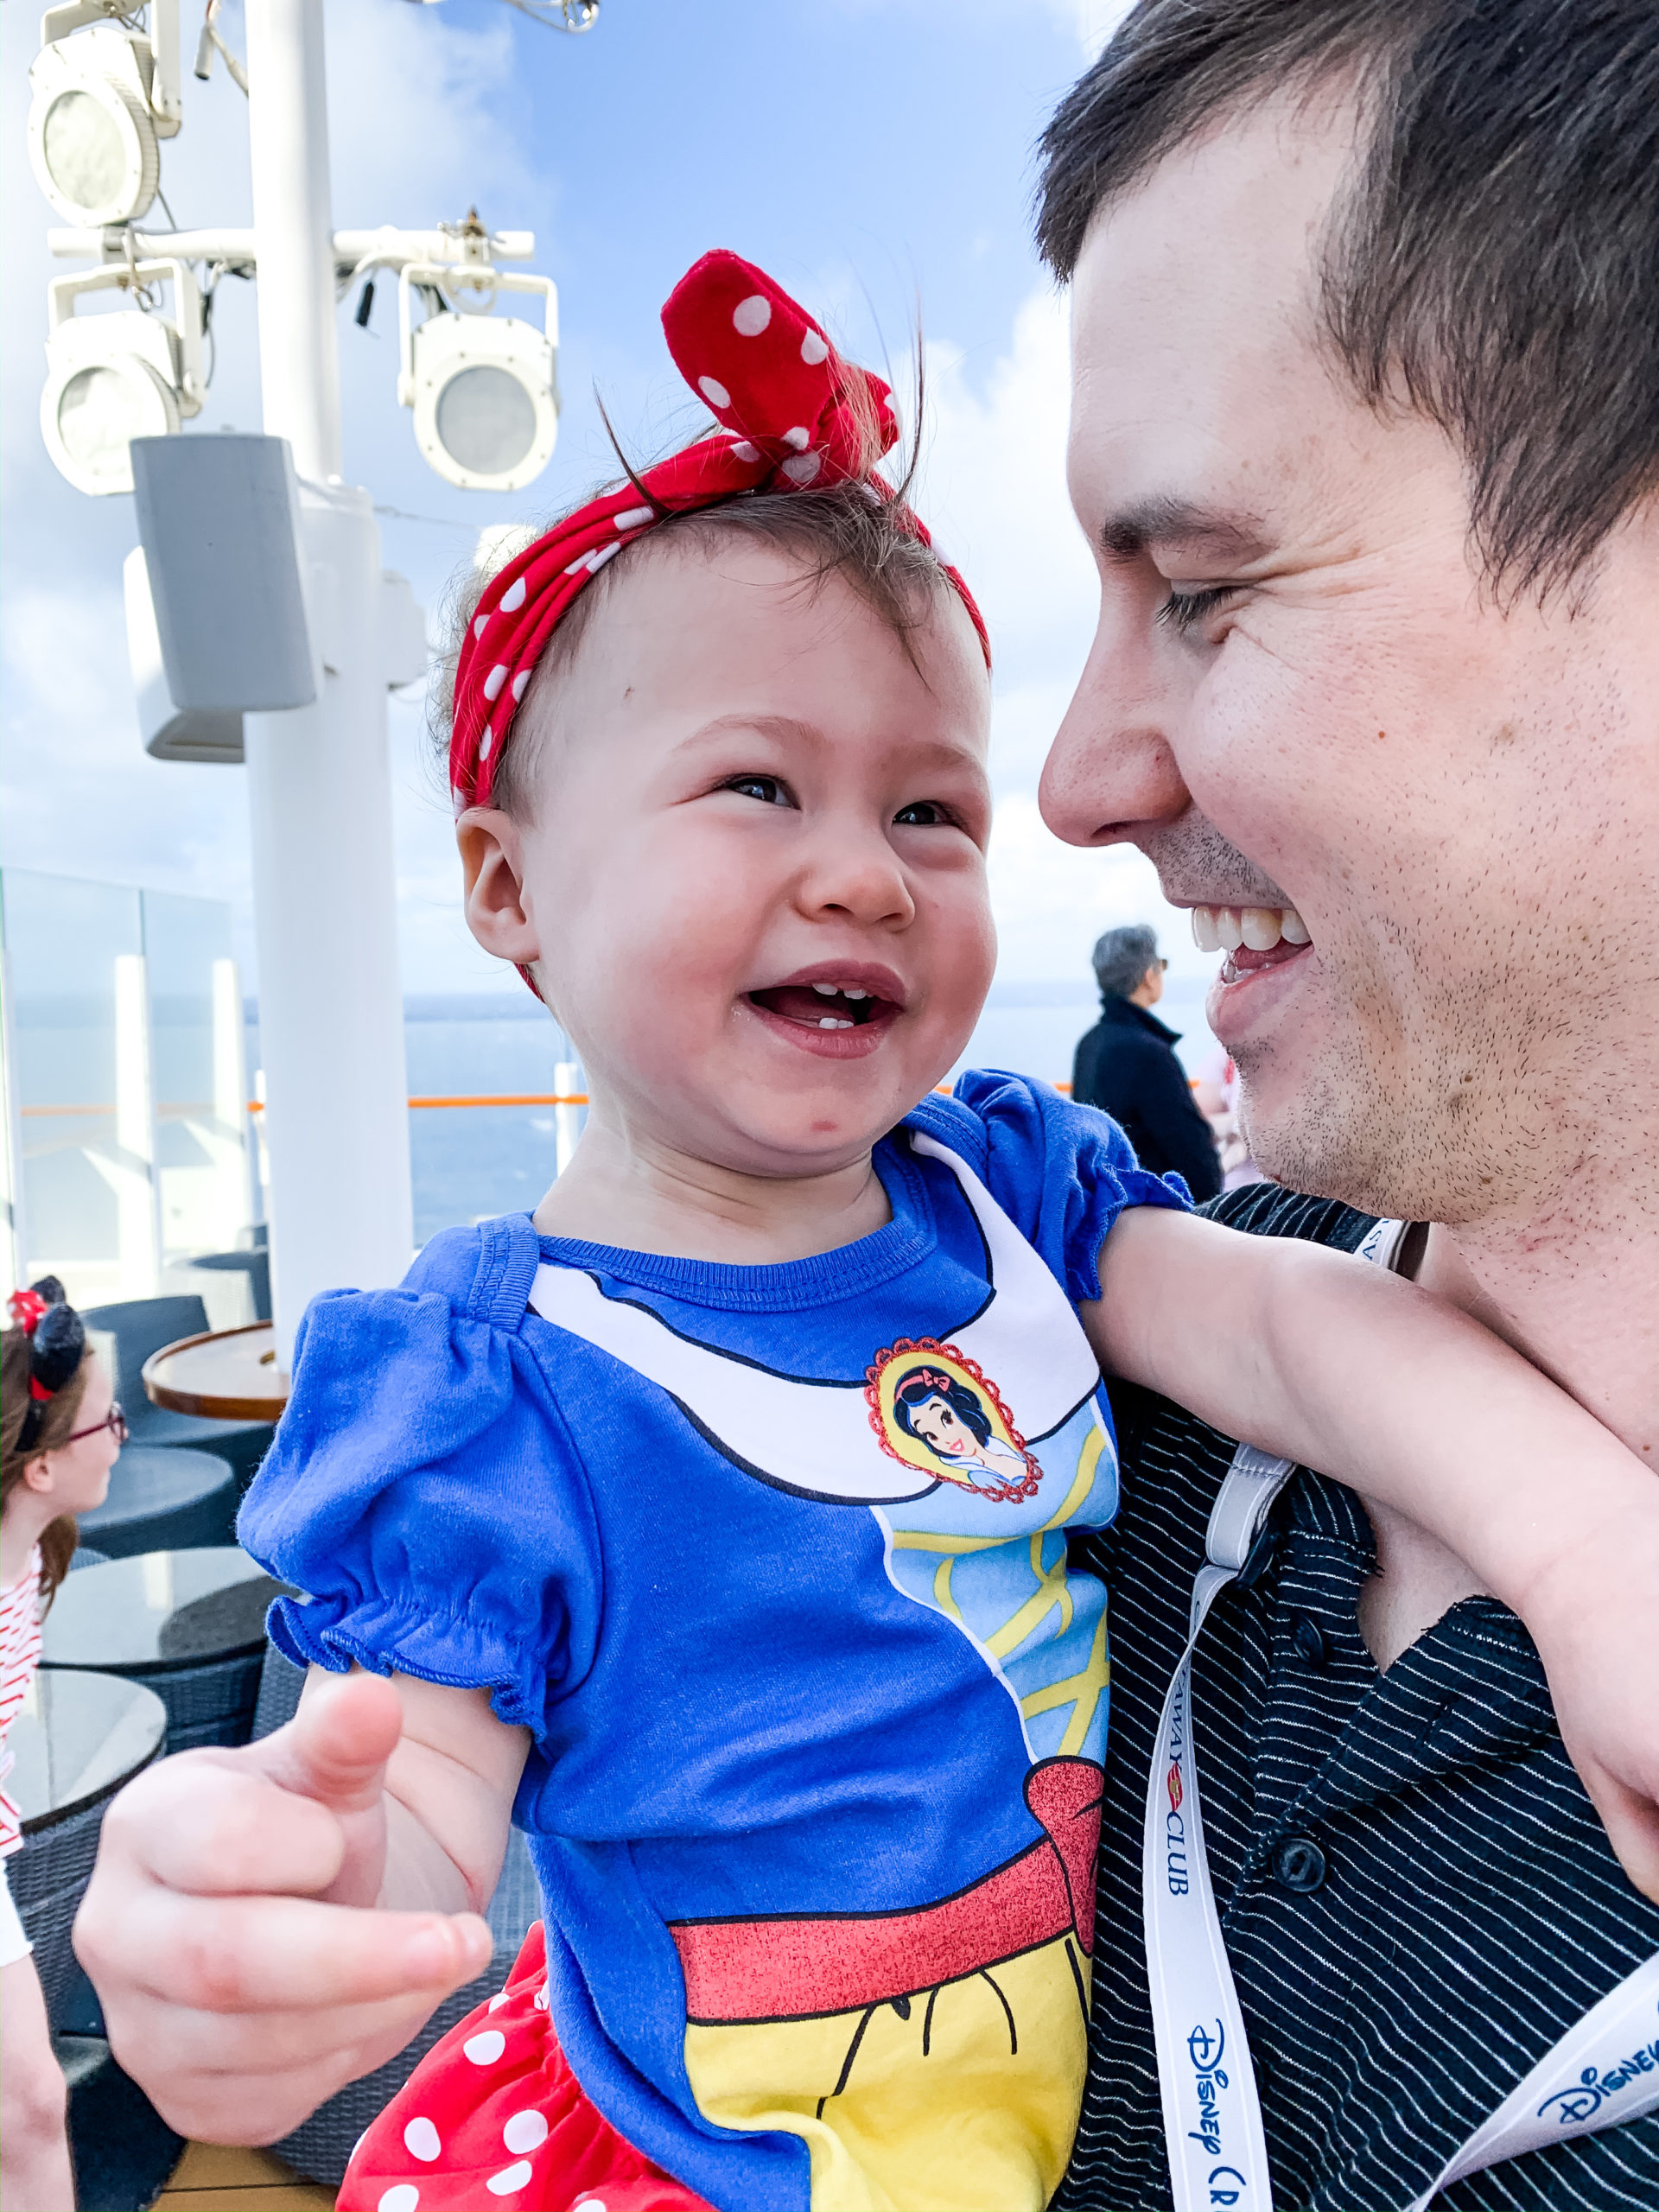 A Full Recap of #DisneyCreatorDays - 7 Days at Disney World and on a Disney Cruise!